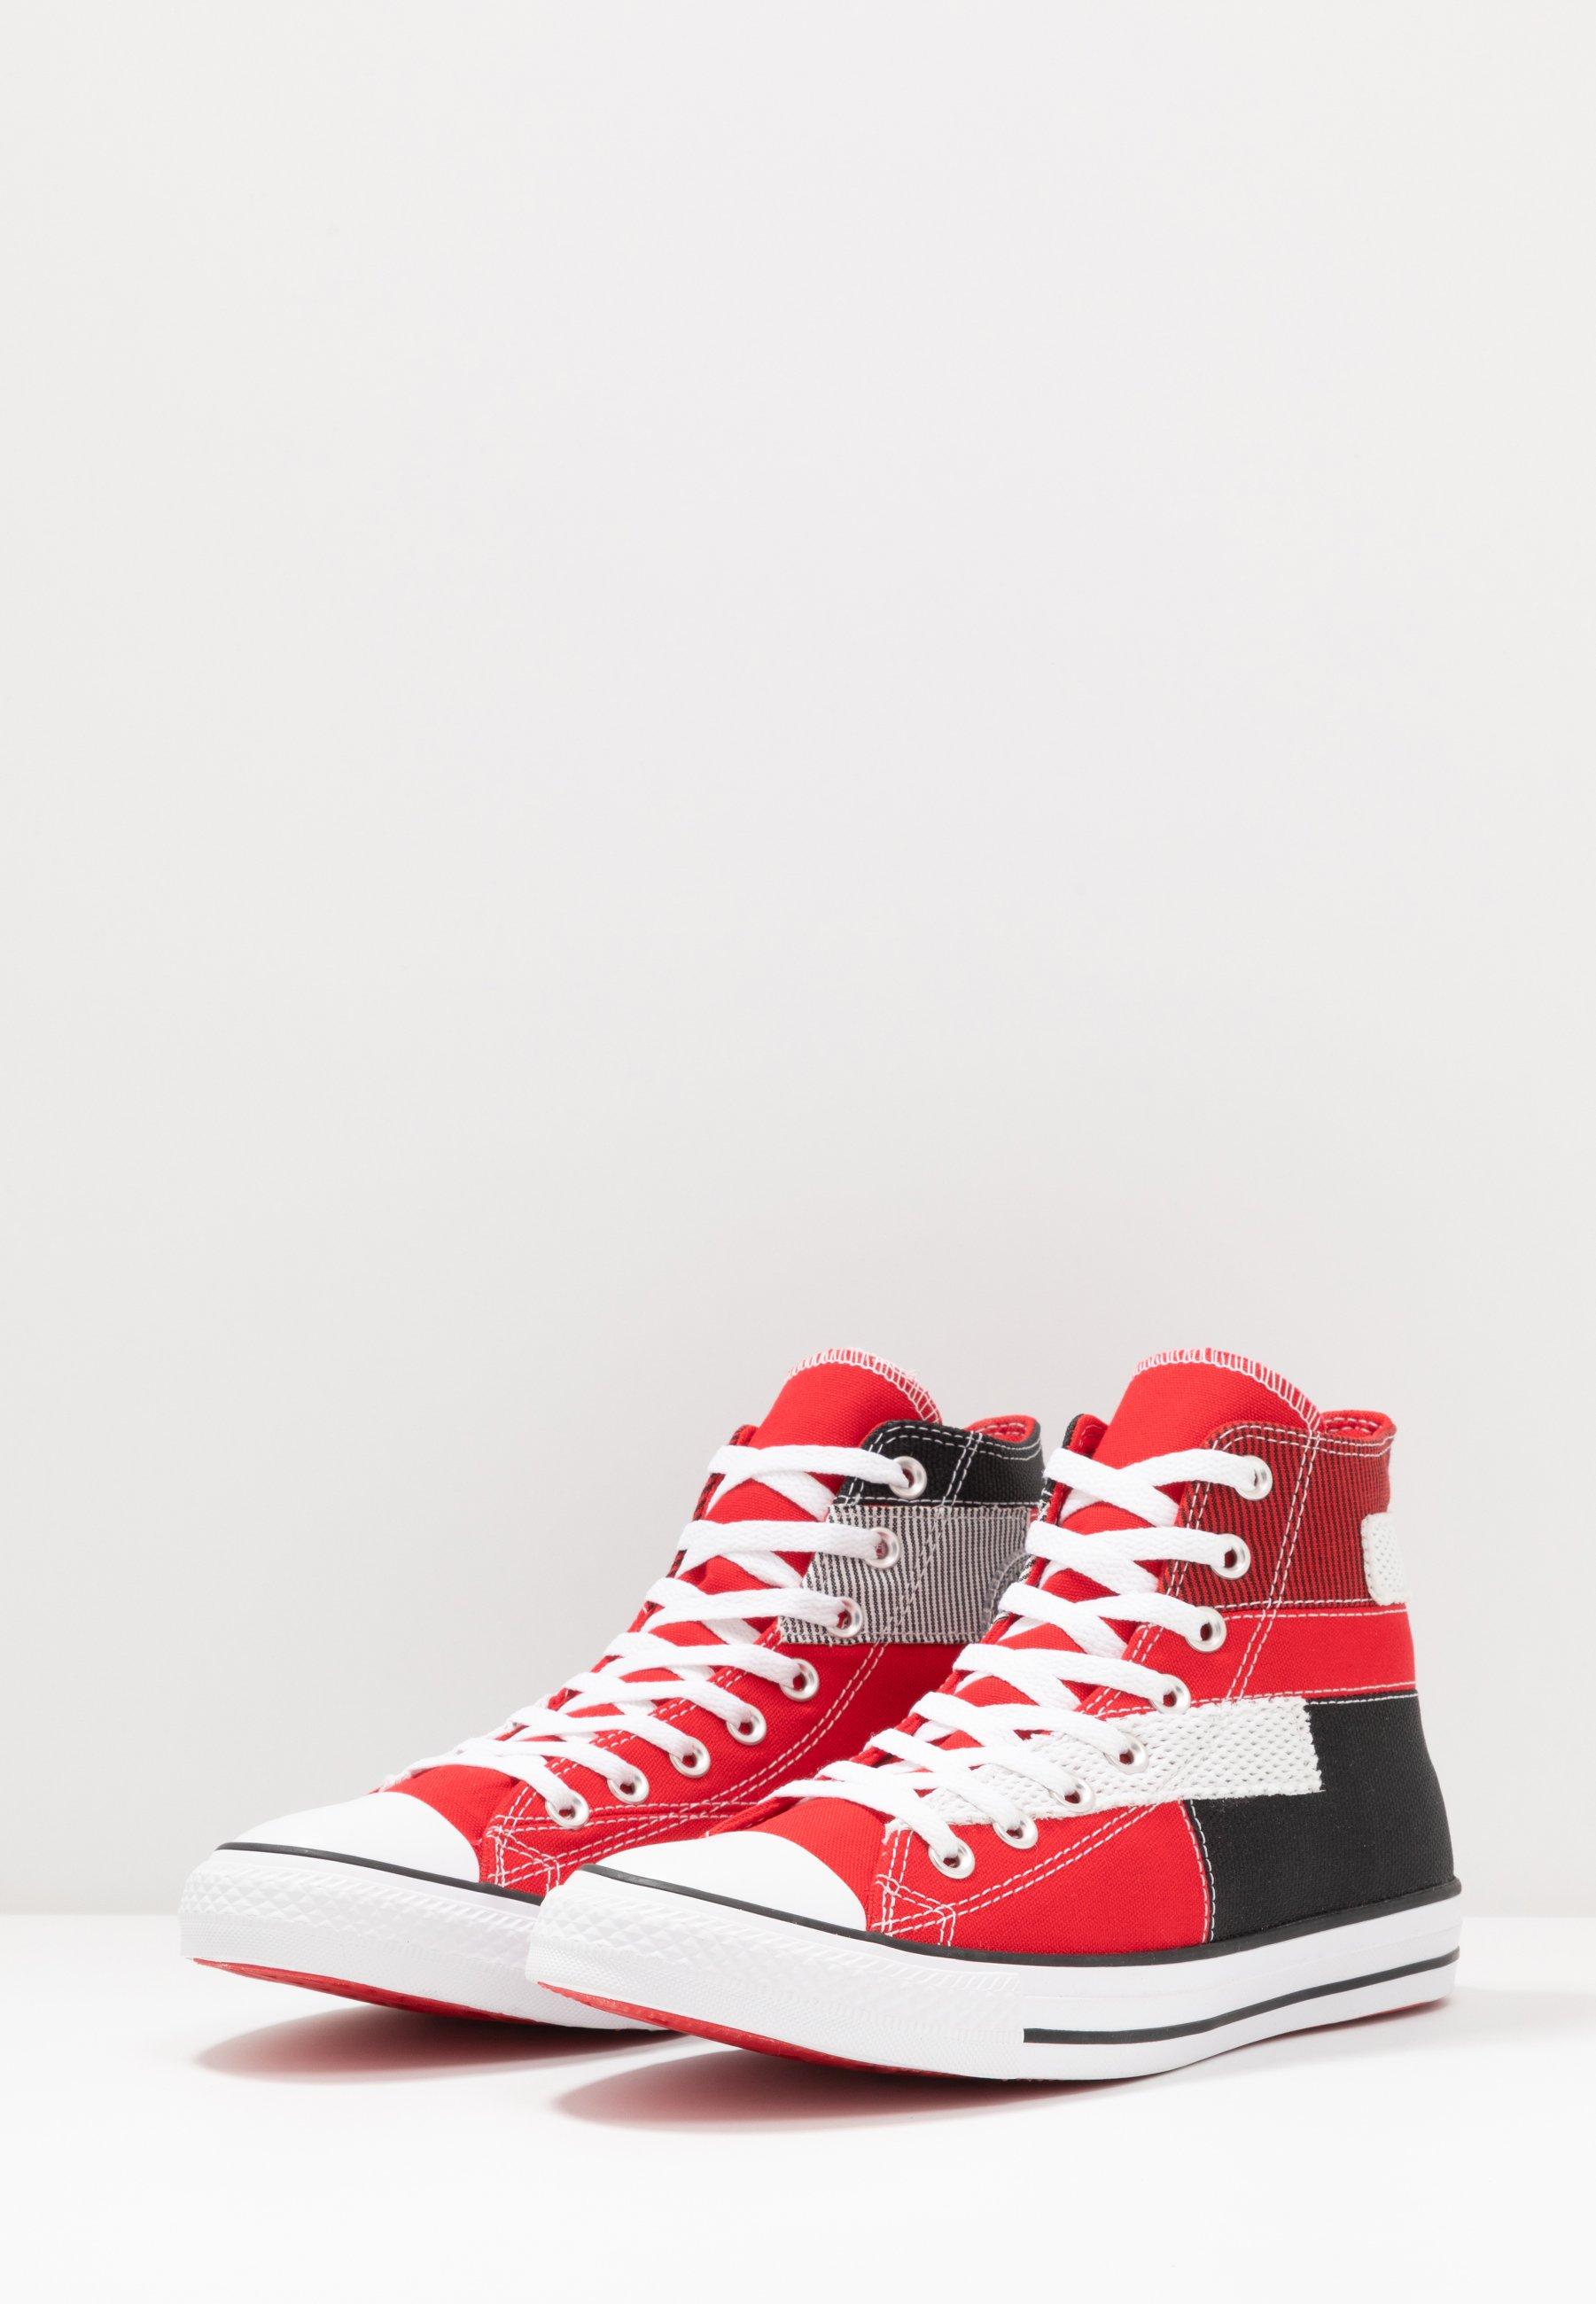 Converse CHUCK TAYLOR ALL STAR - Sneaker high - university red/white/black/rot - Herrenschuhe RggwA